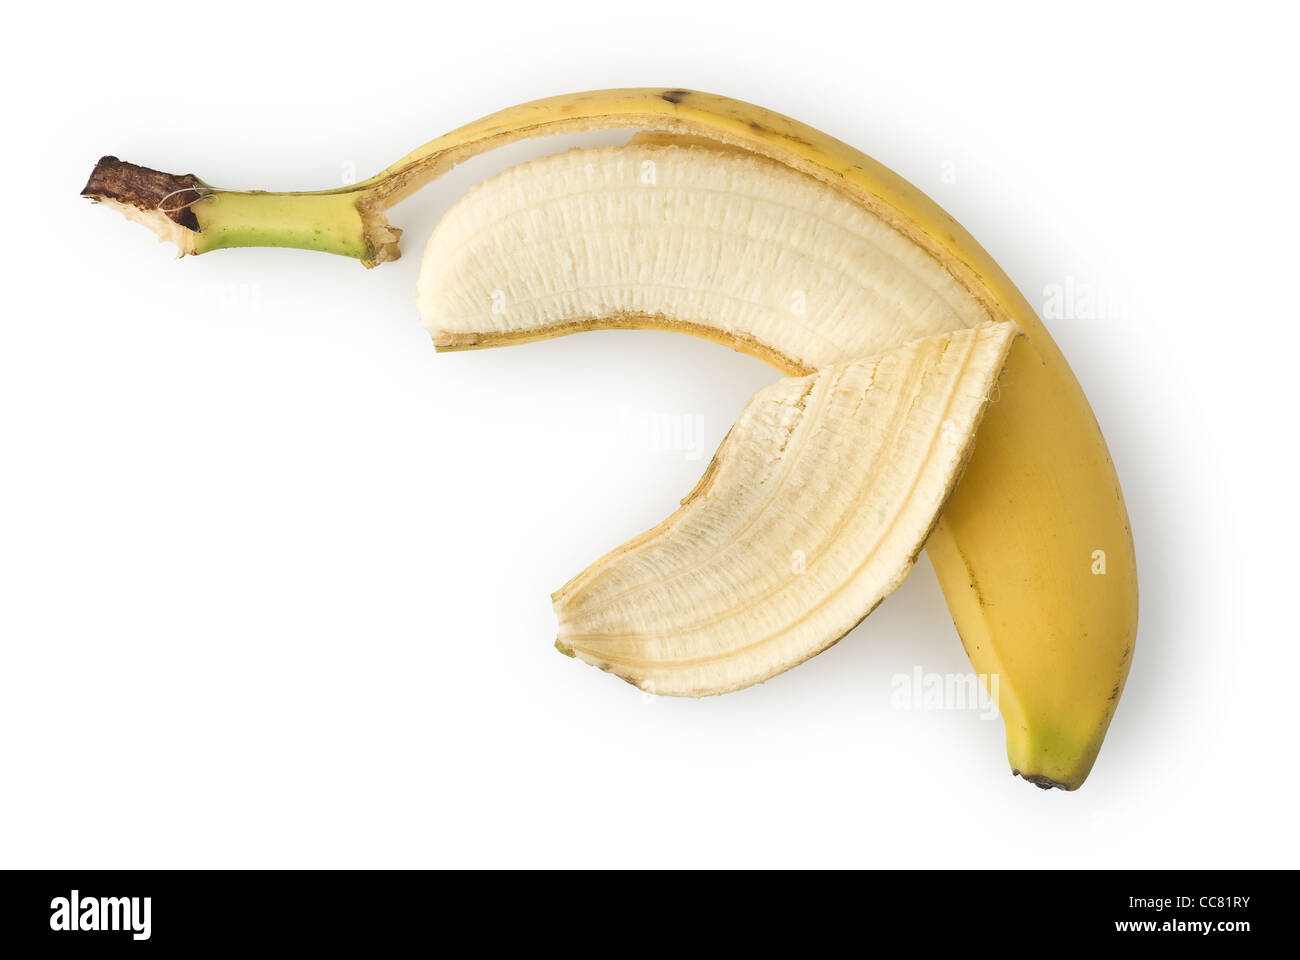 Peeled Banana as Healthy and Nutritious Dietary Supplement - Stock Image